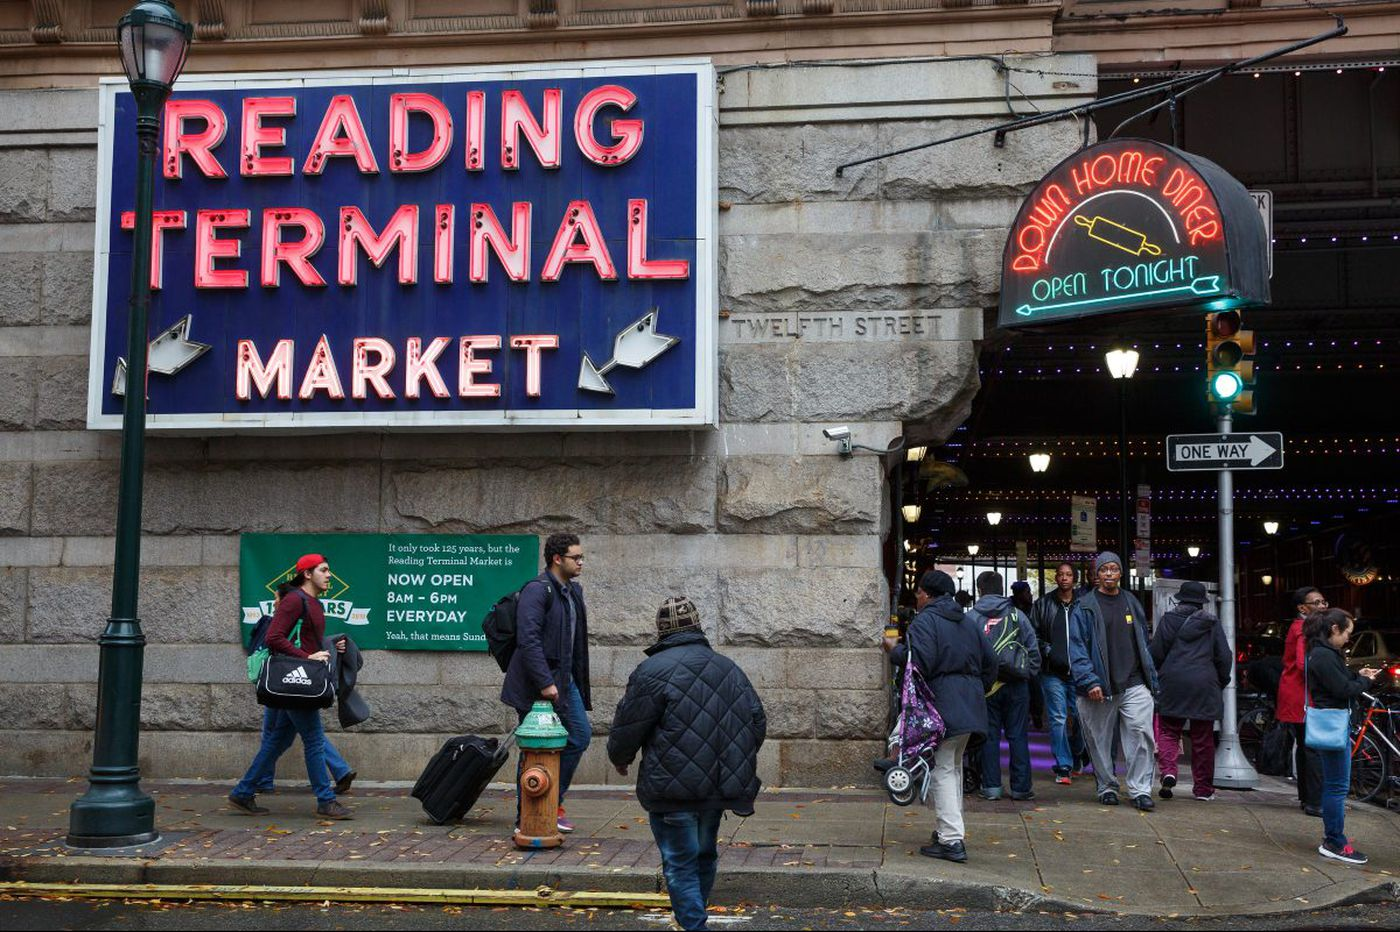 Celebrate Reading Terminal Market's 125th anniversary all week long